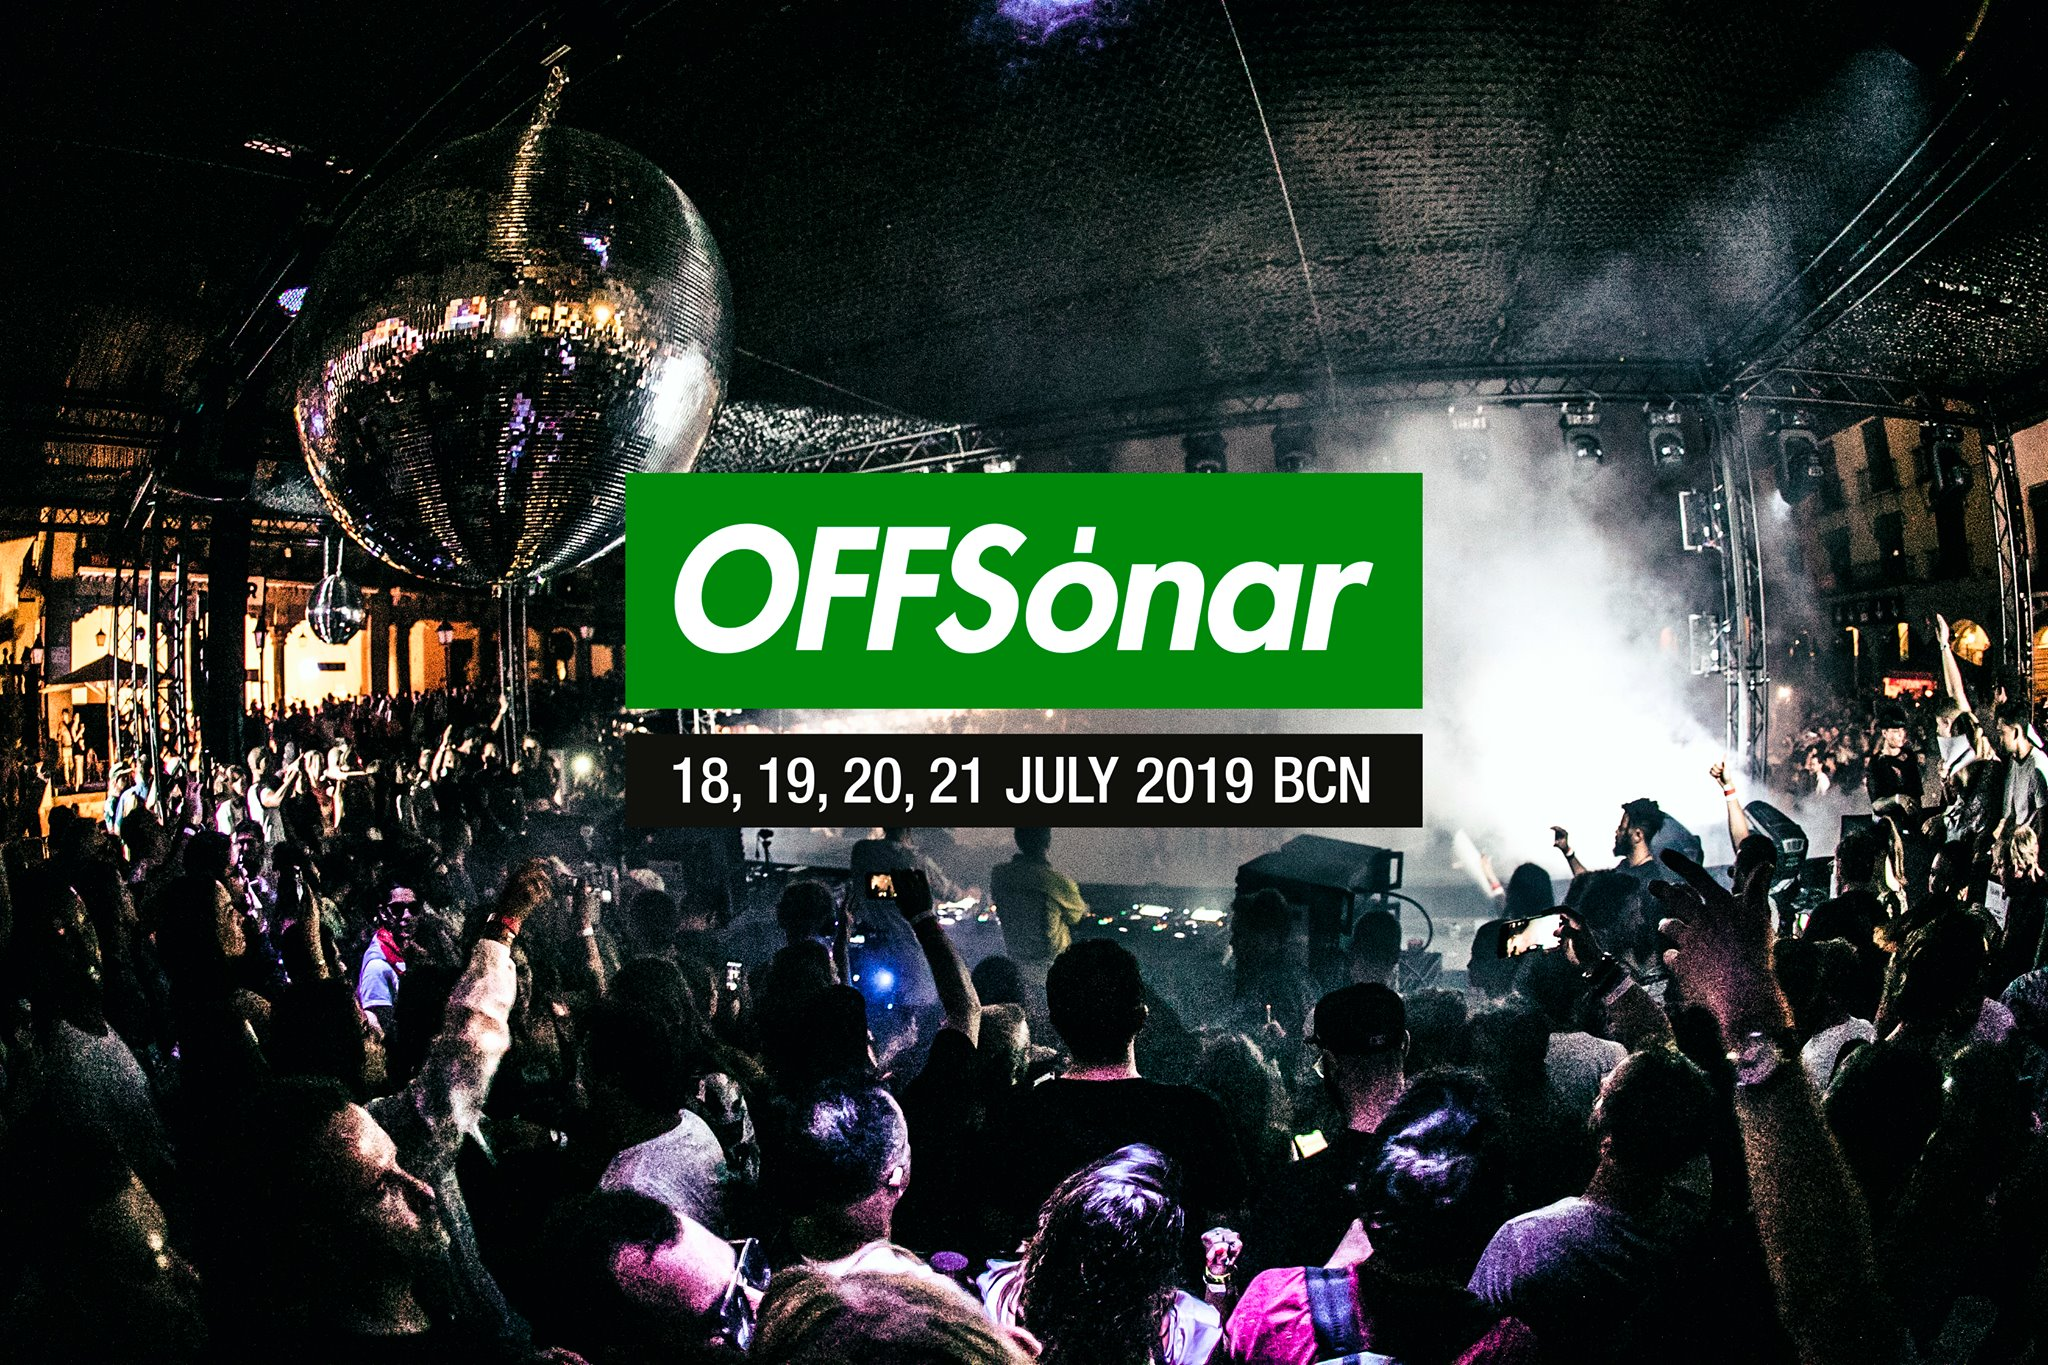 Top 10 Off Sonar Parties Data Transmission